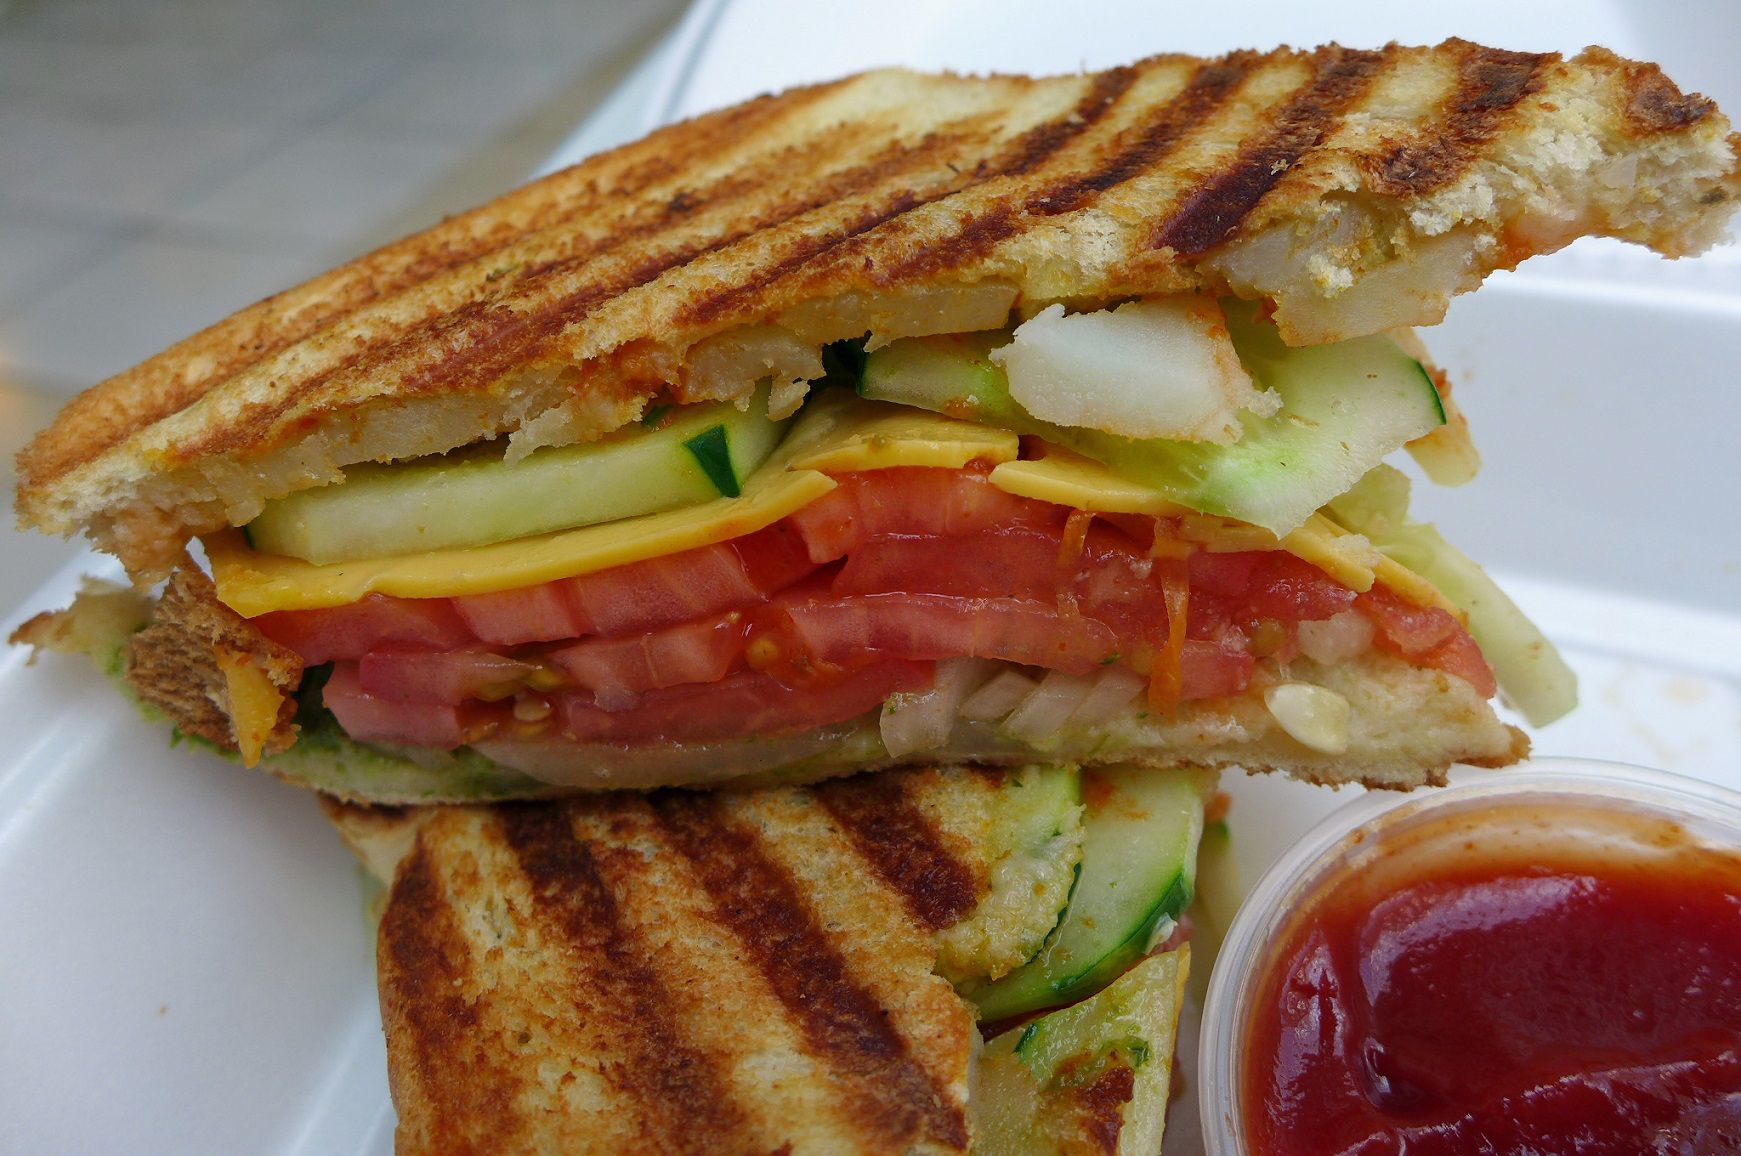 bombay sandwich one late summer day bleary eyed from the heat we ...